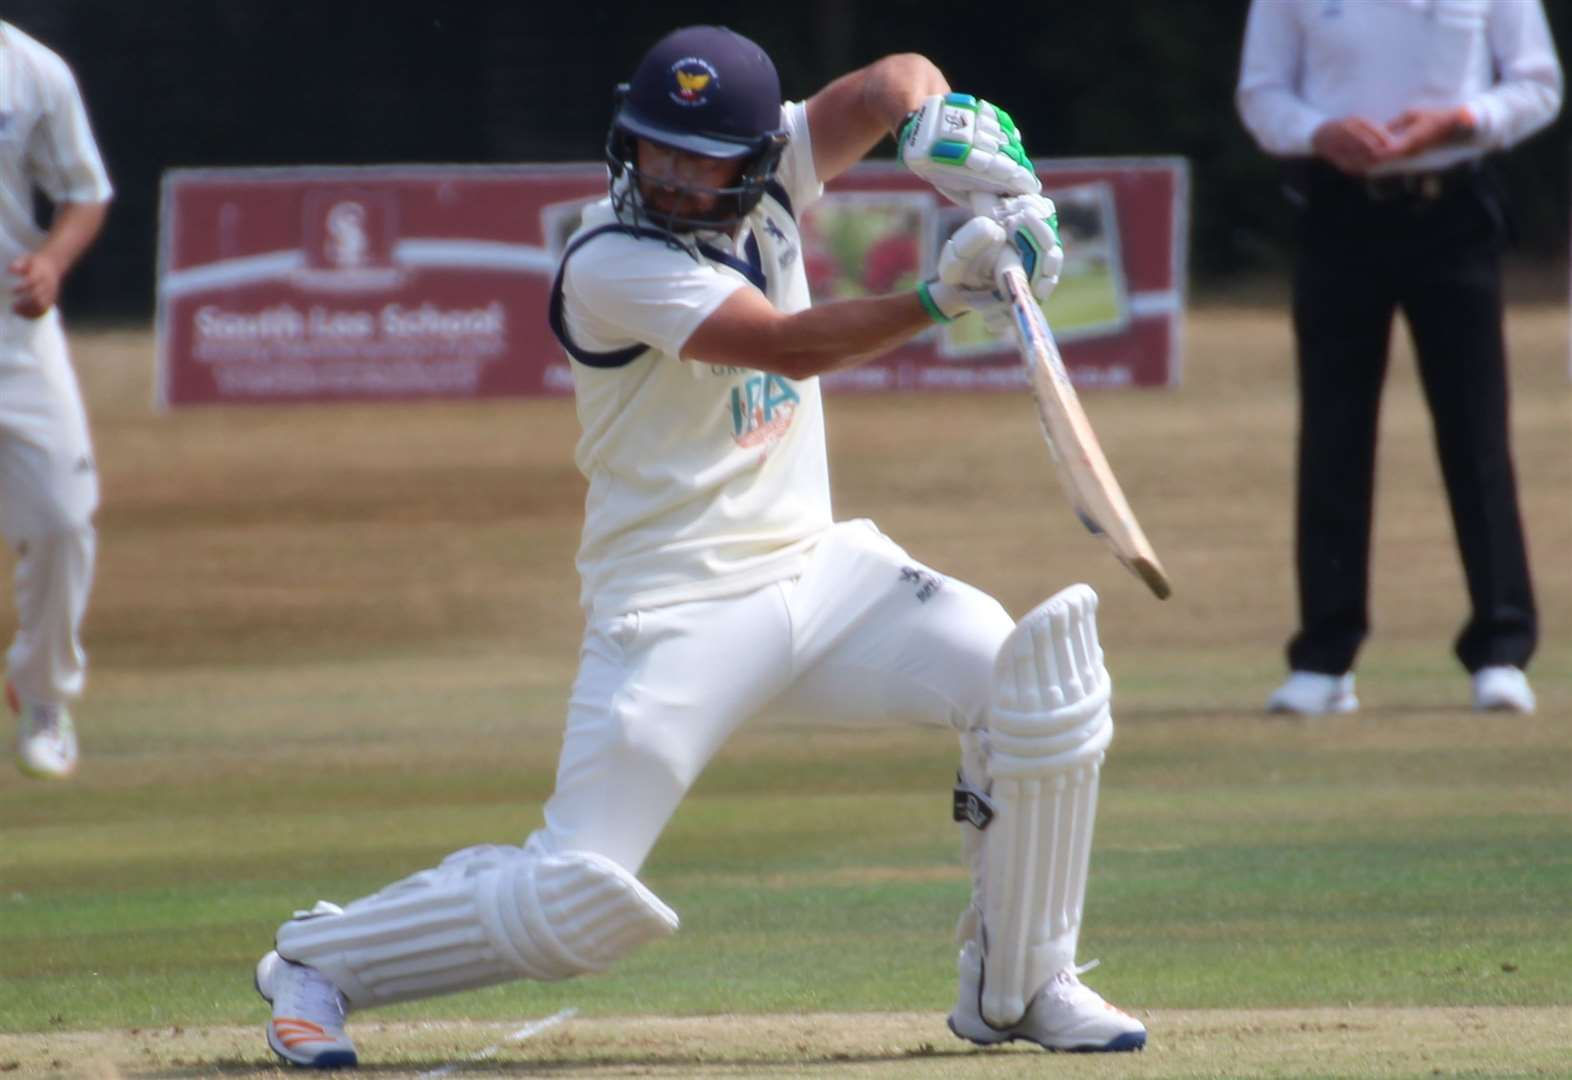 Mickleburgh and Poulson back to boost Suffolk for Bucks trip